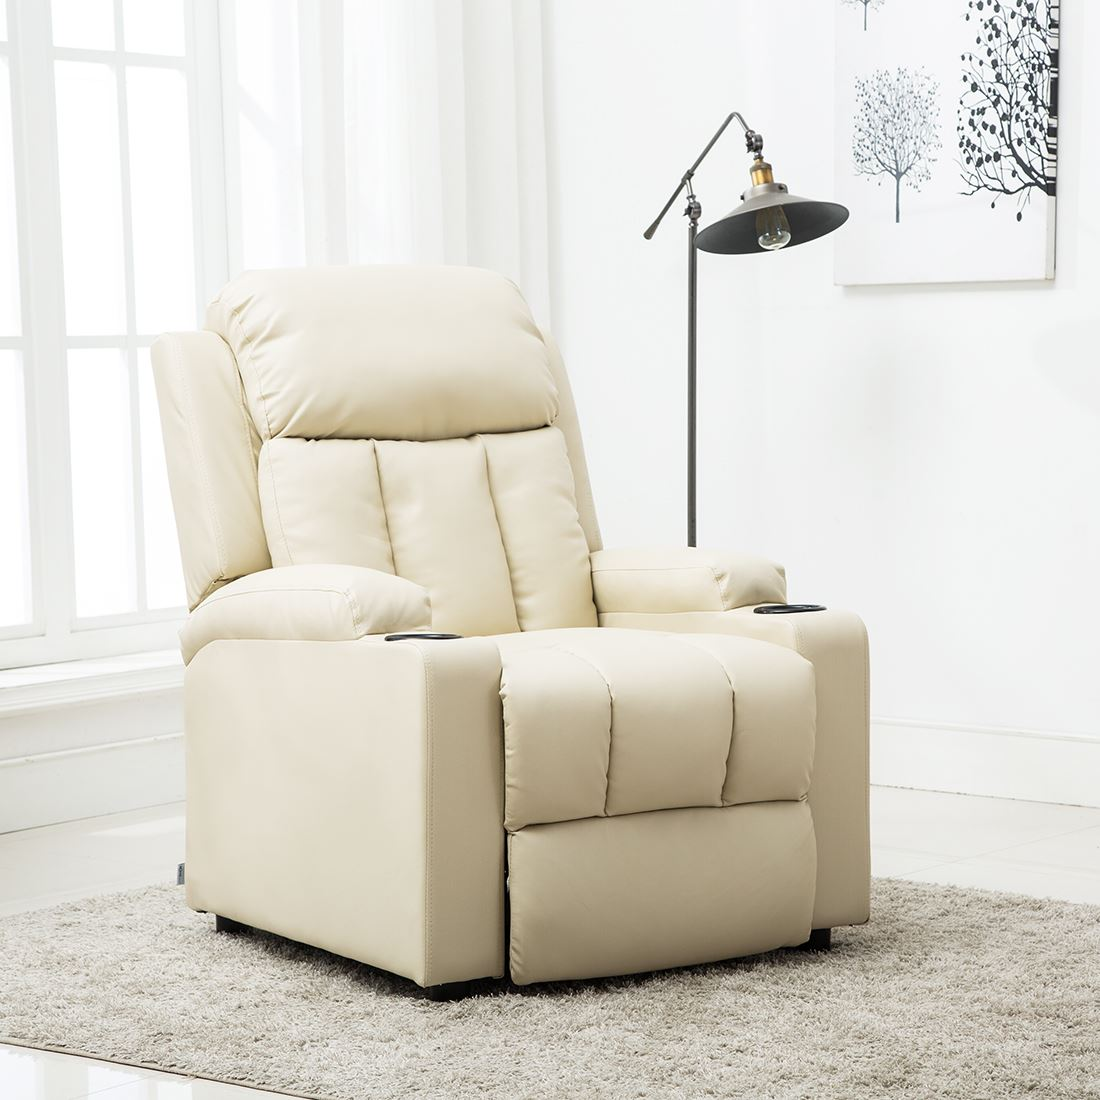 STUDIO-LEATHER-RECLINER-w-DRINK-HOLDERS-ARMCHAIR-SOFA-CHAIR-CINEMA-GAMING thumbnail 20